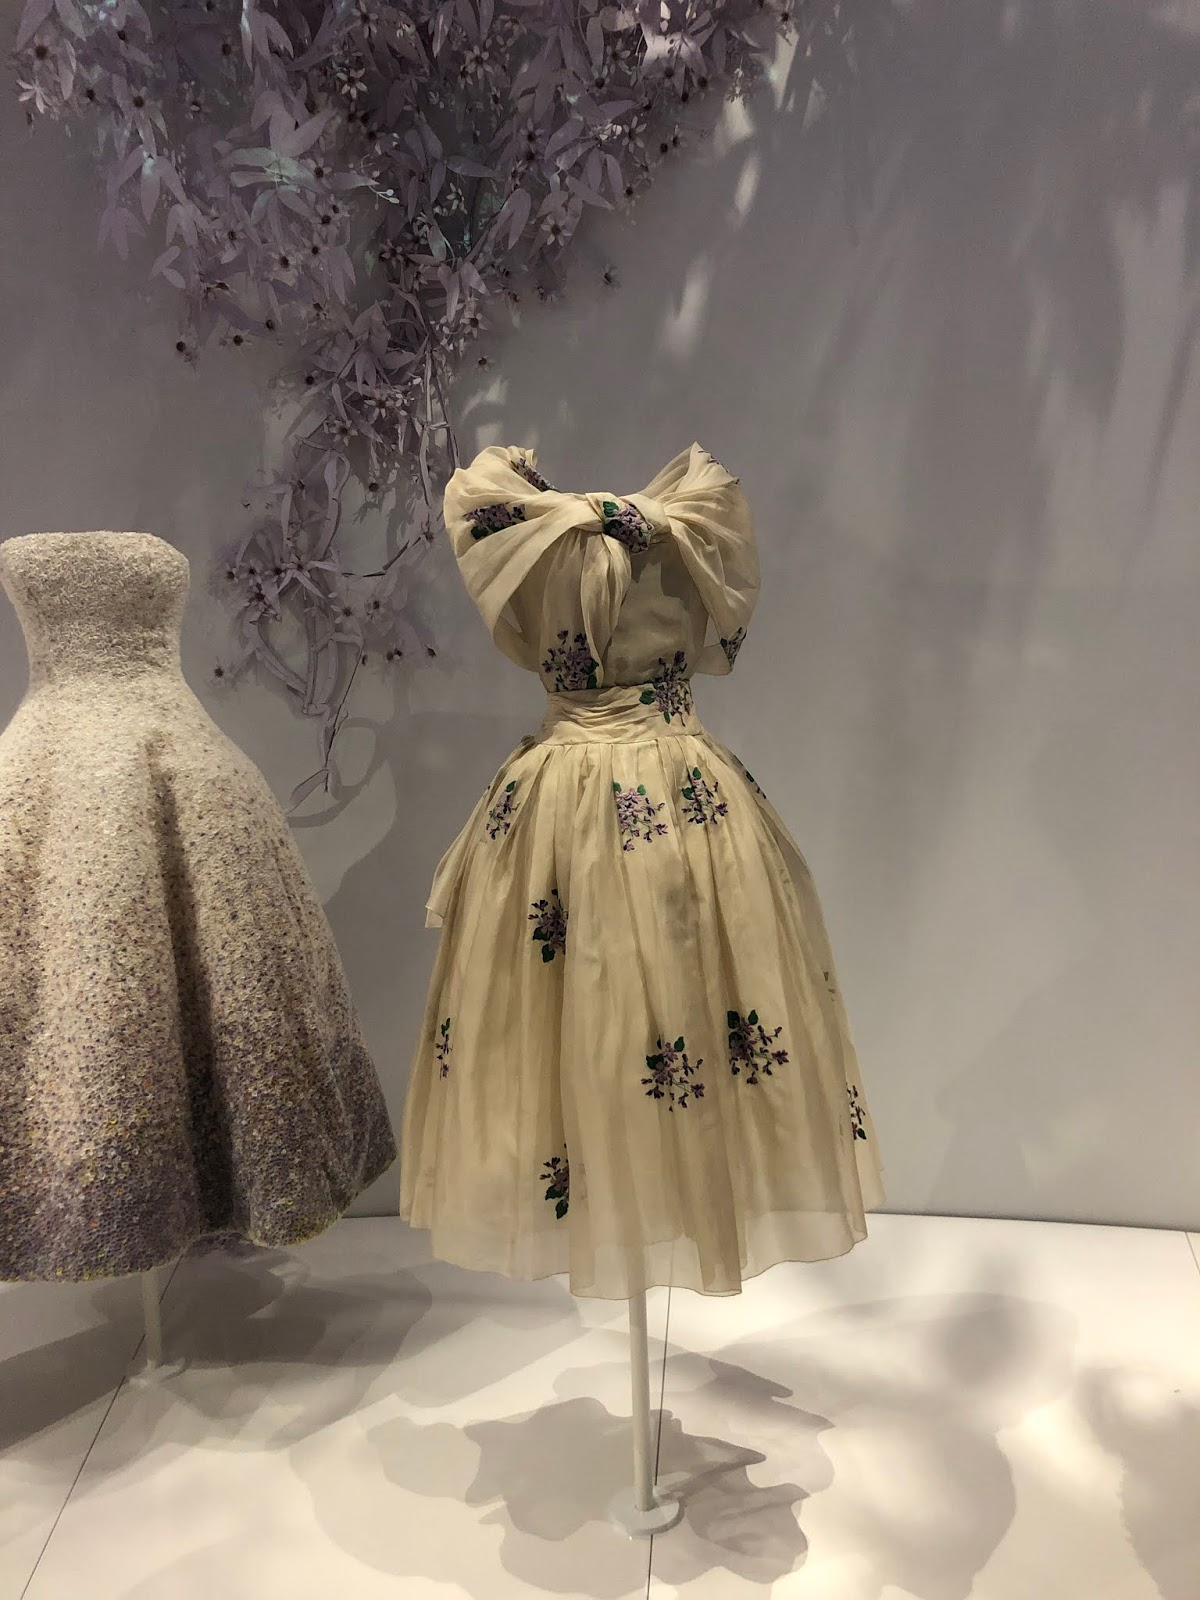 christian dior exhibition v and a flower dress